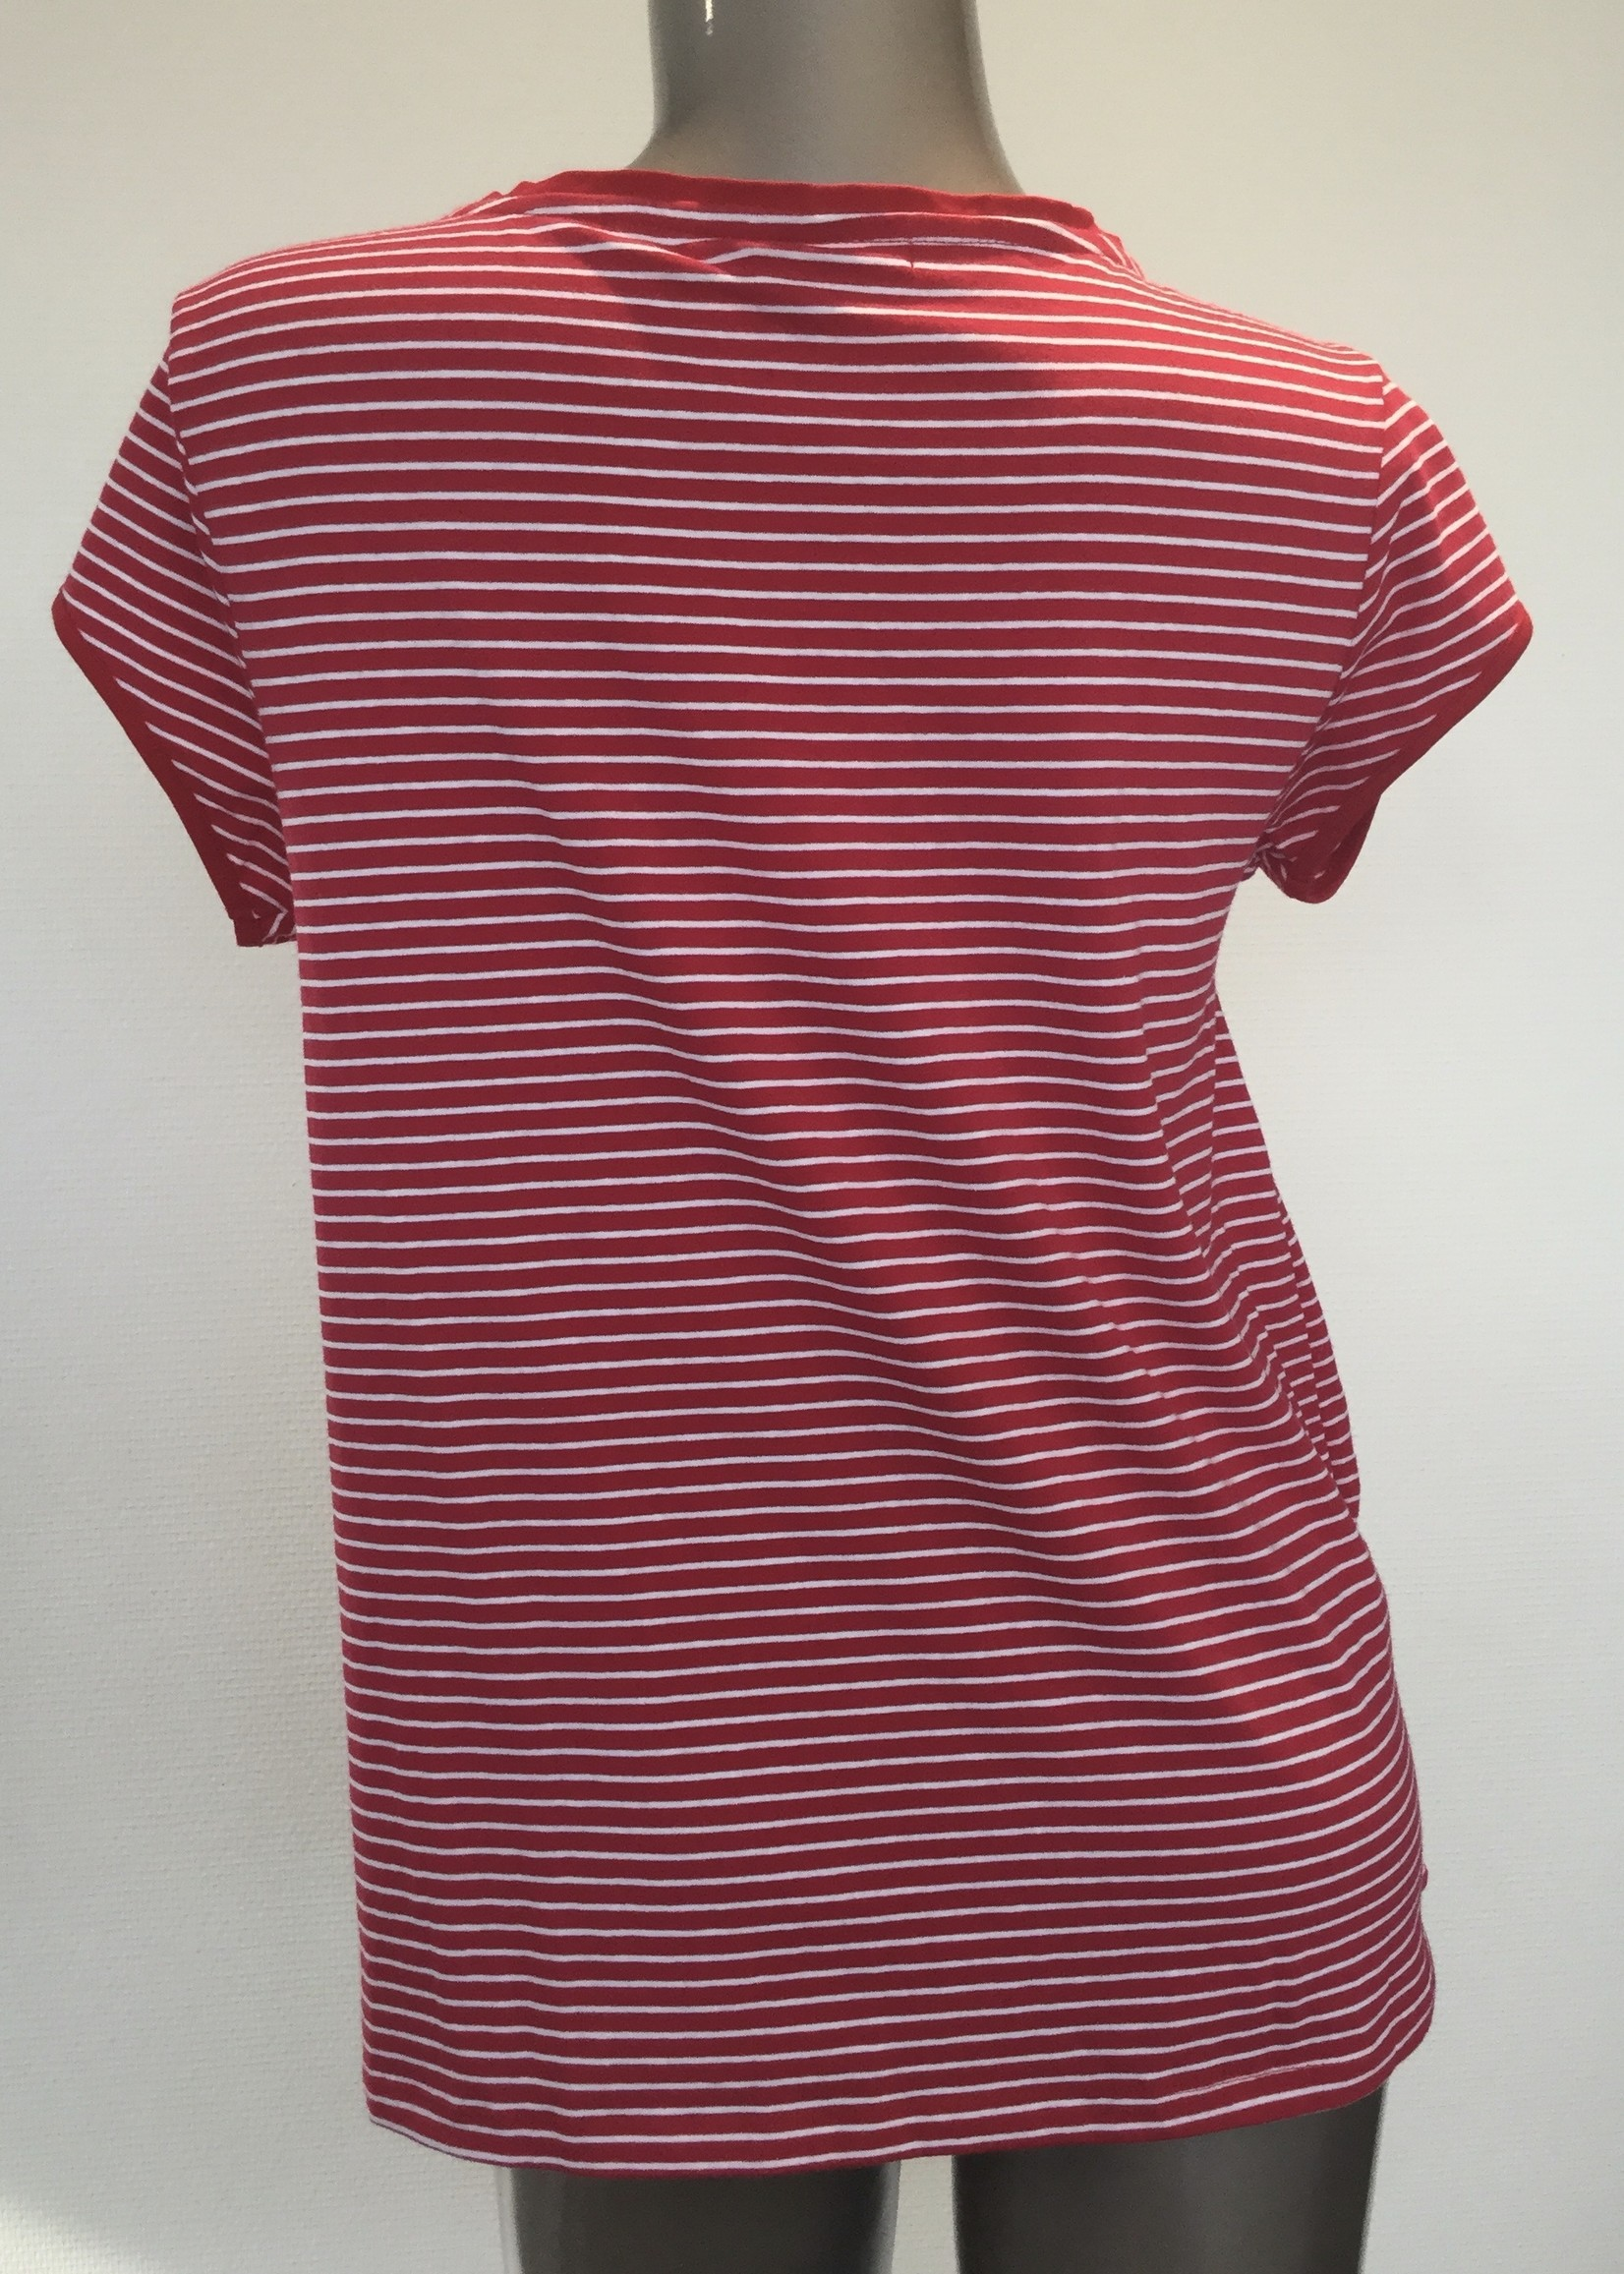 OHMA STRIPED NURSING TEE CROSSED ON FRONT 52950662/RED-WHITE